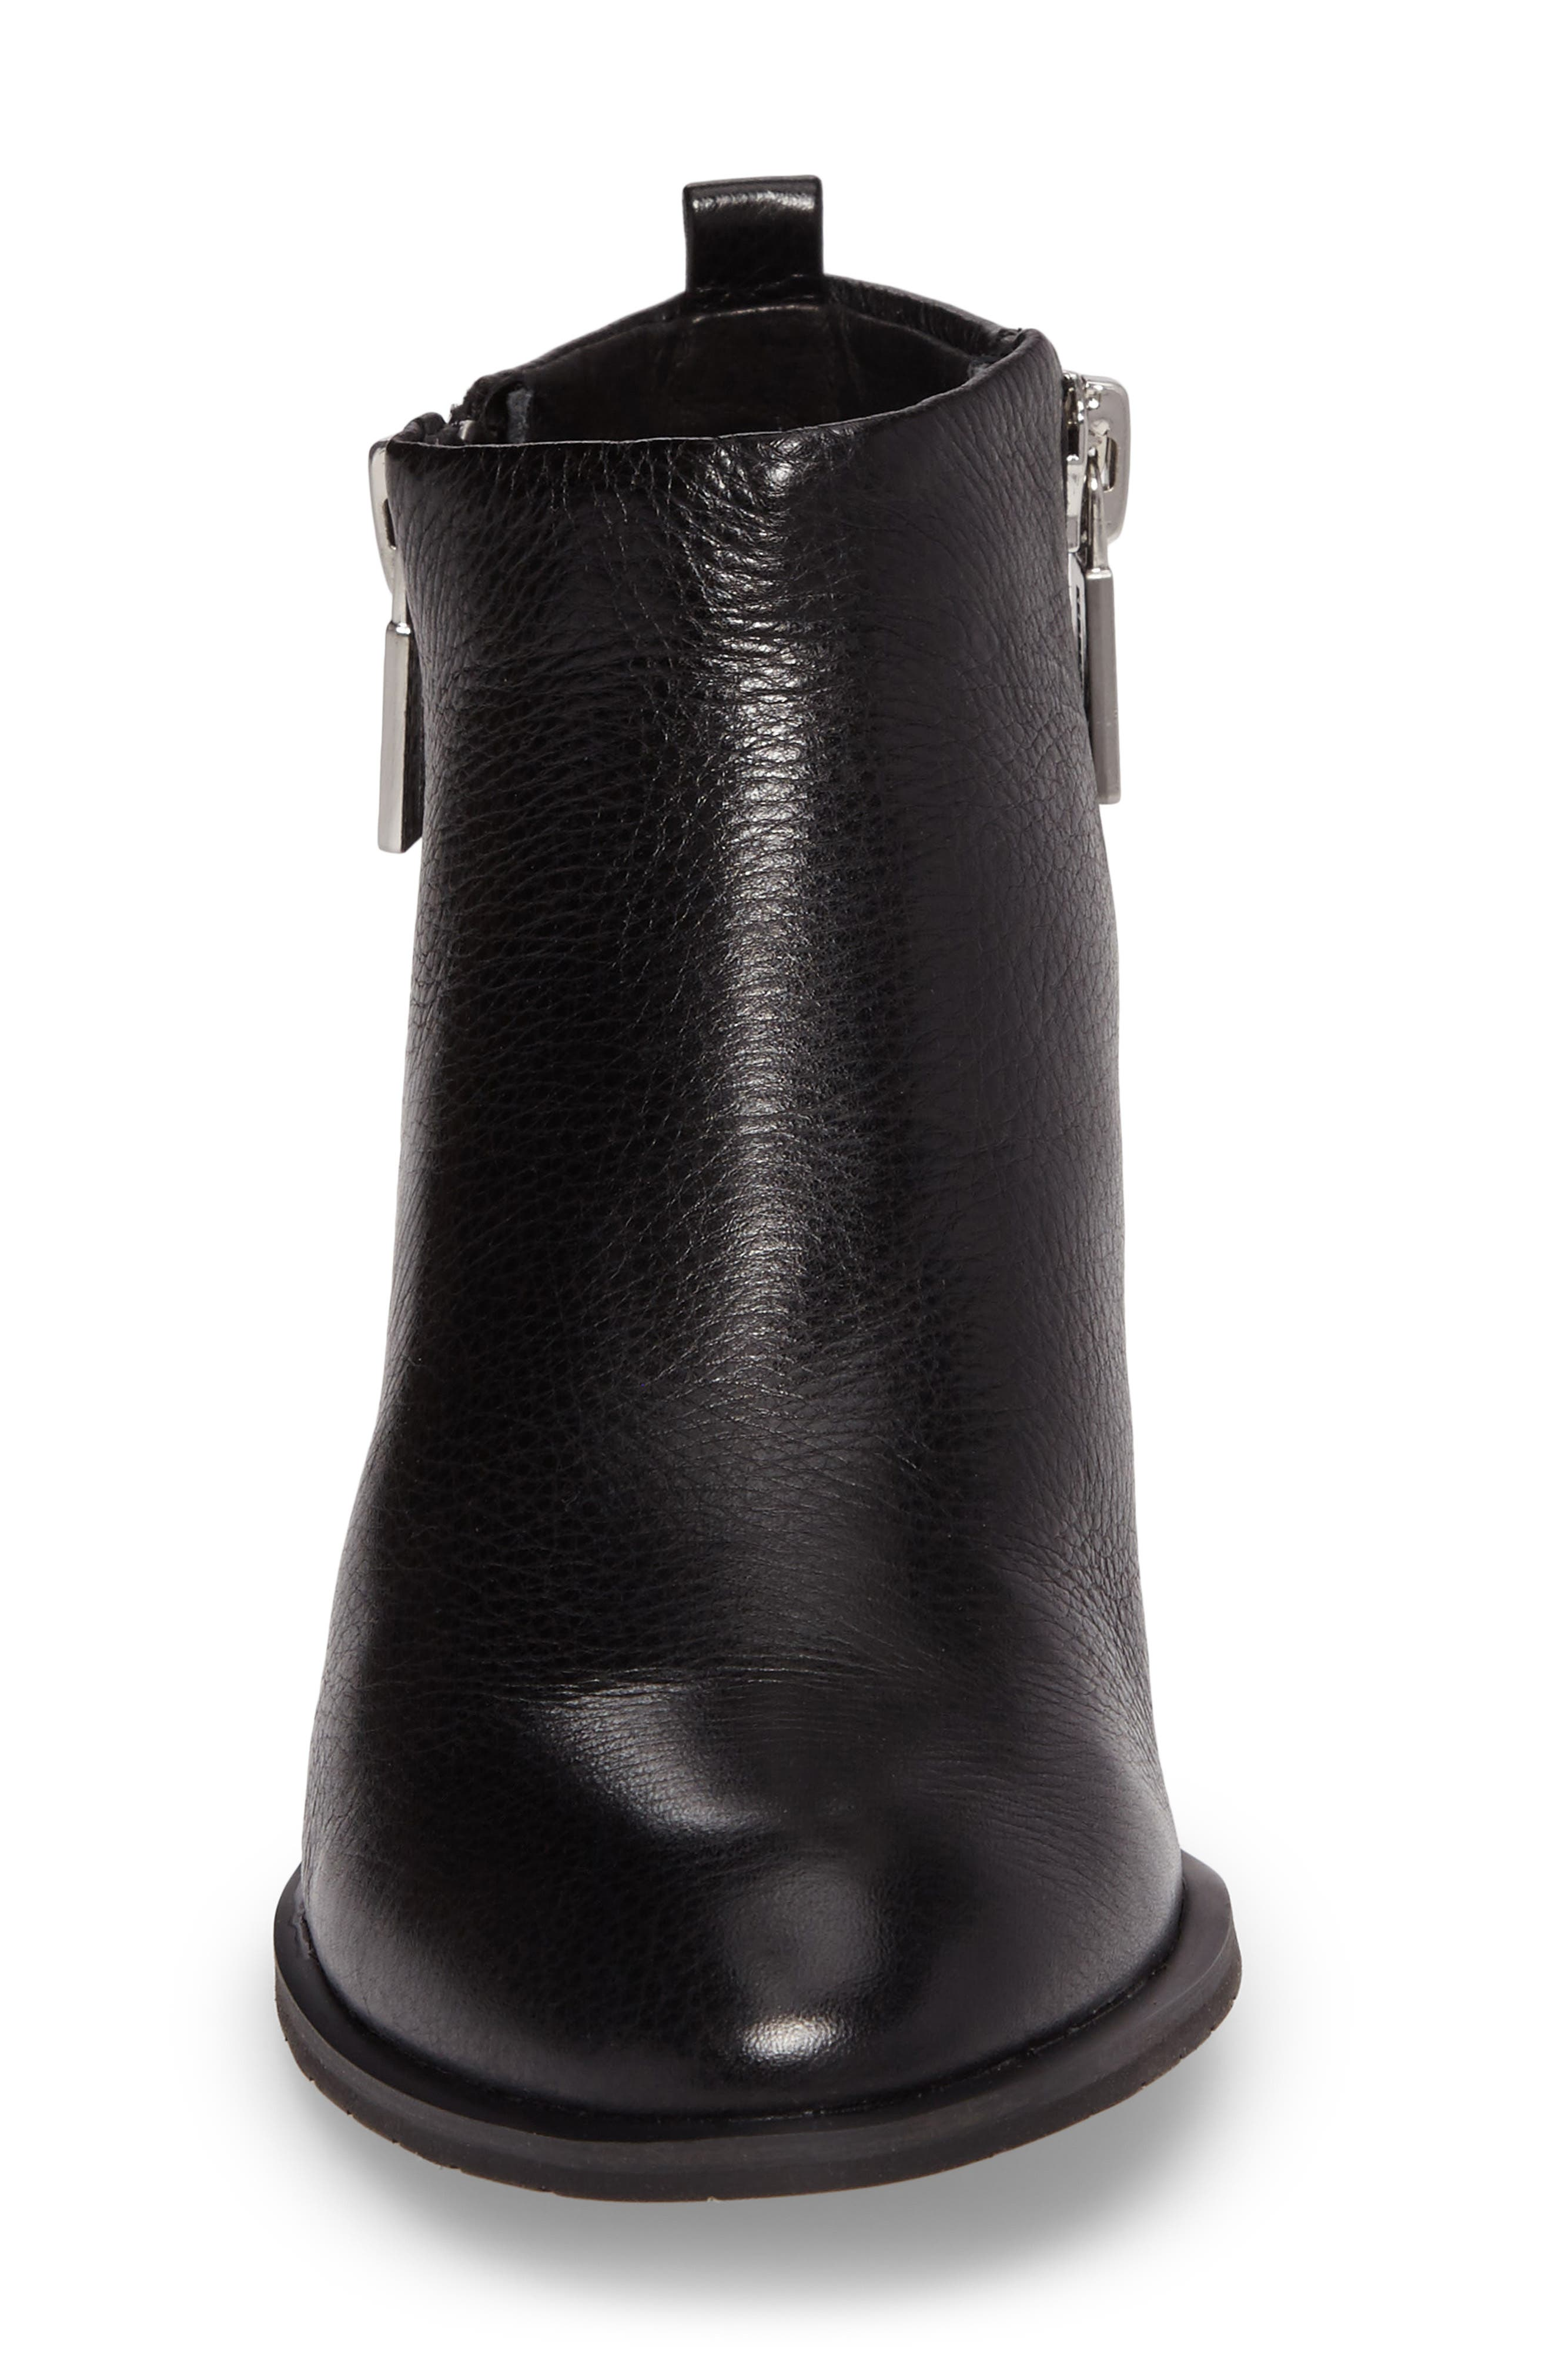 KENNETH COLE NEW YORK, Addy Bootie, Alternate thumbnail 4, color, 001